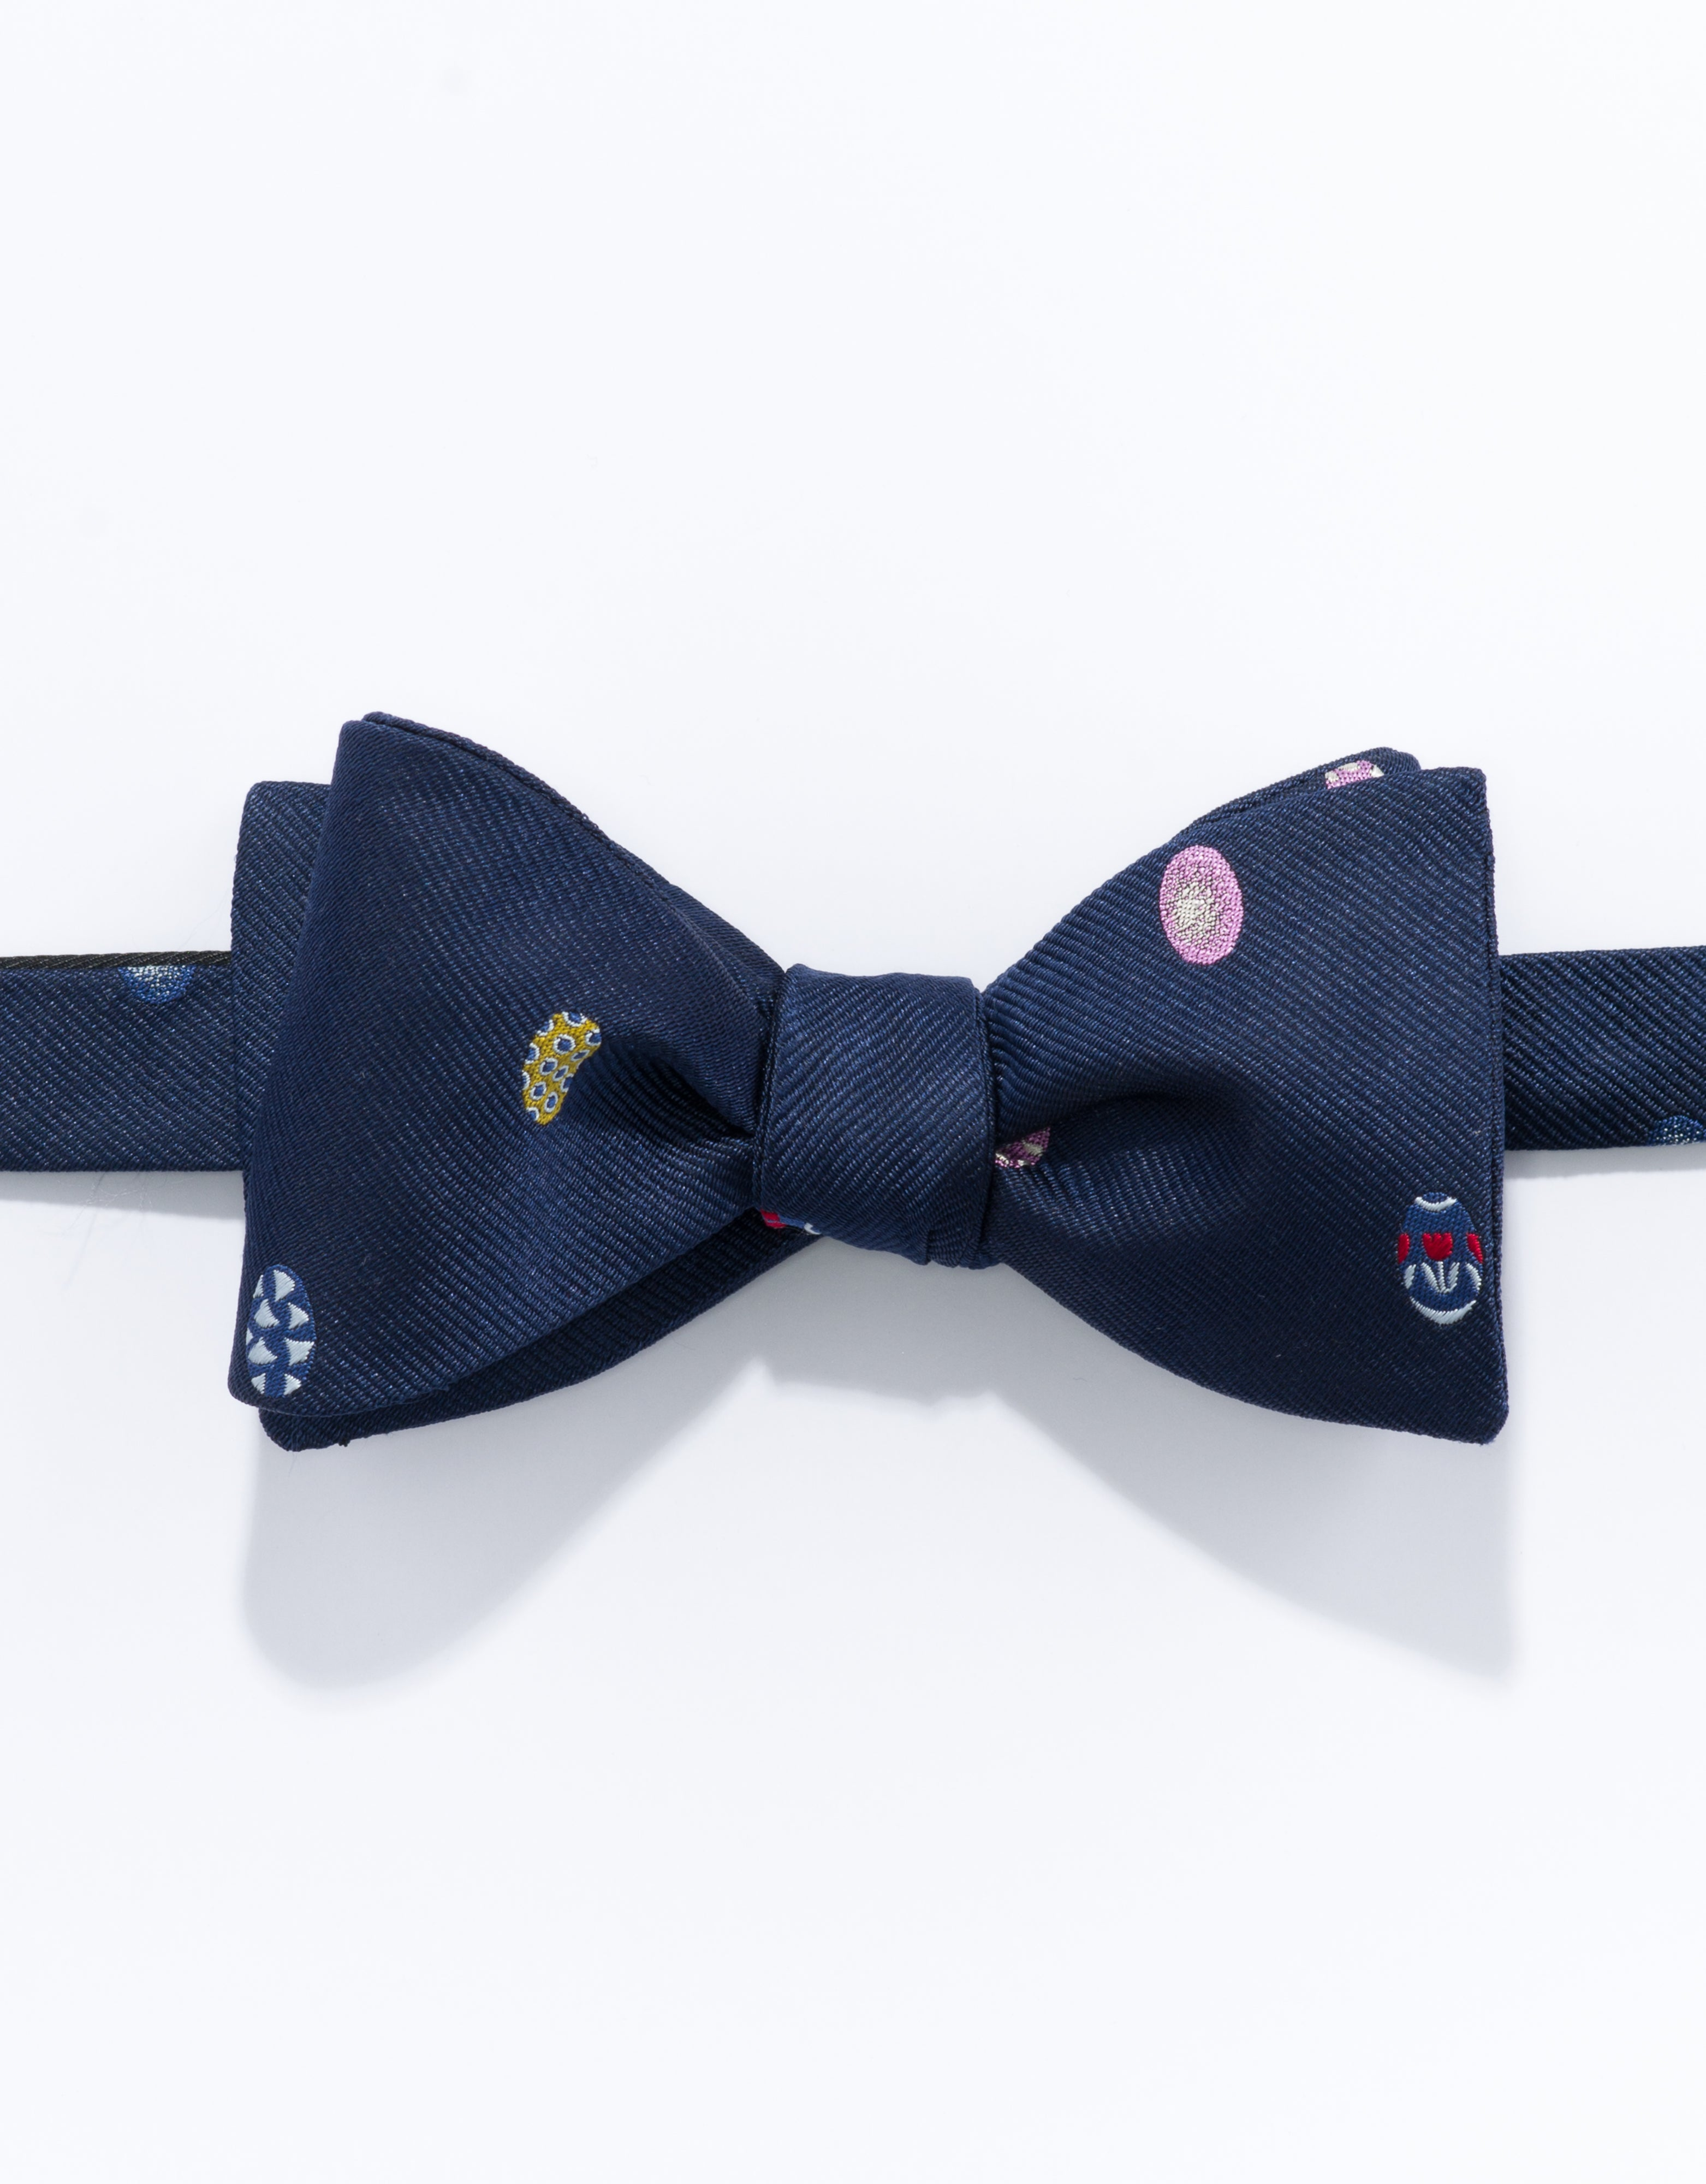 EMBLEMATIC EASTER EGG BOW TIE - NAVY